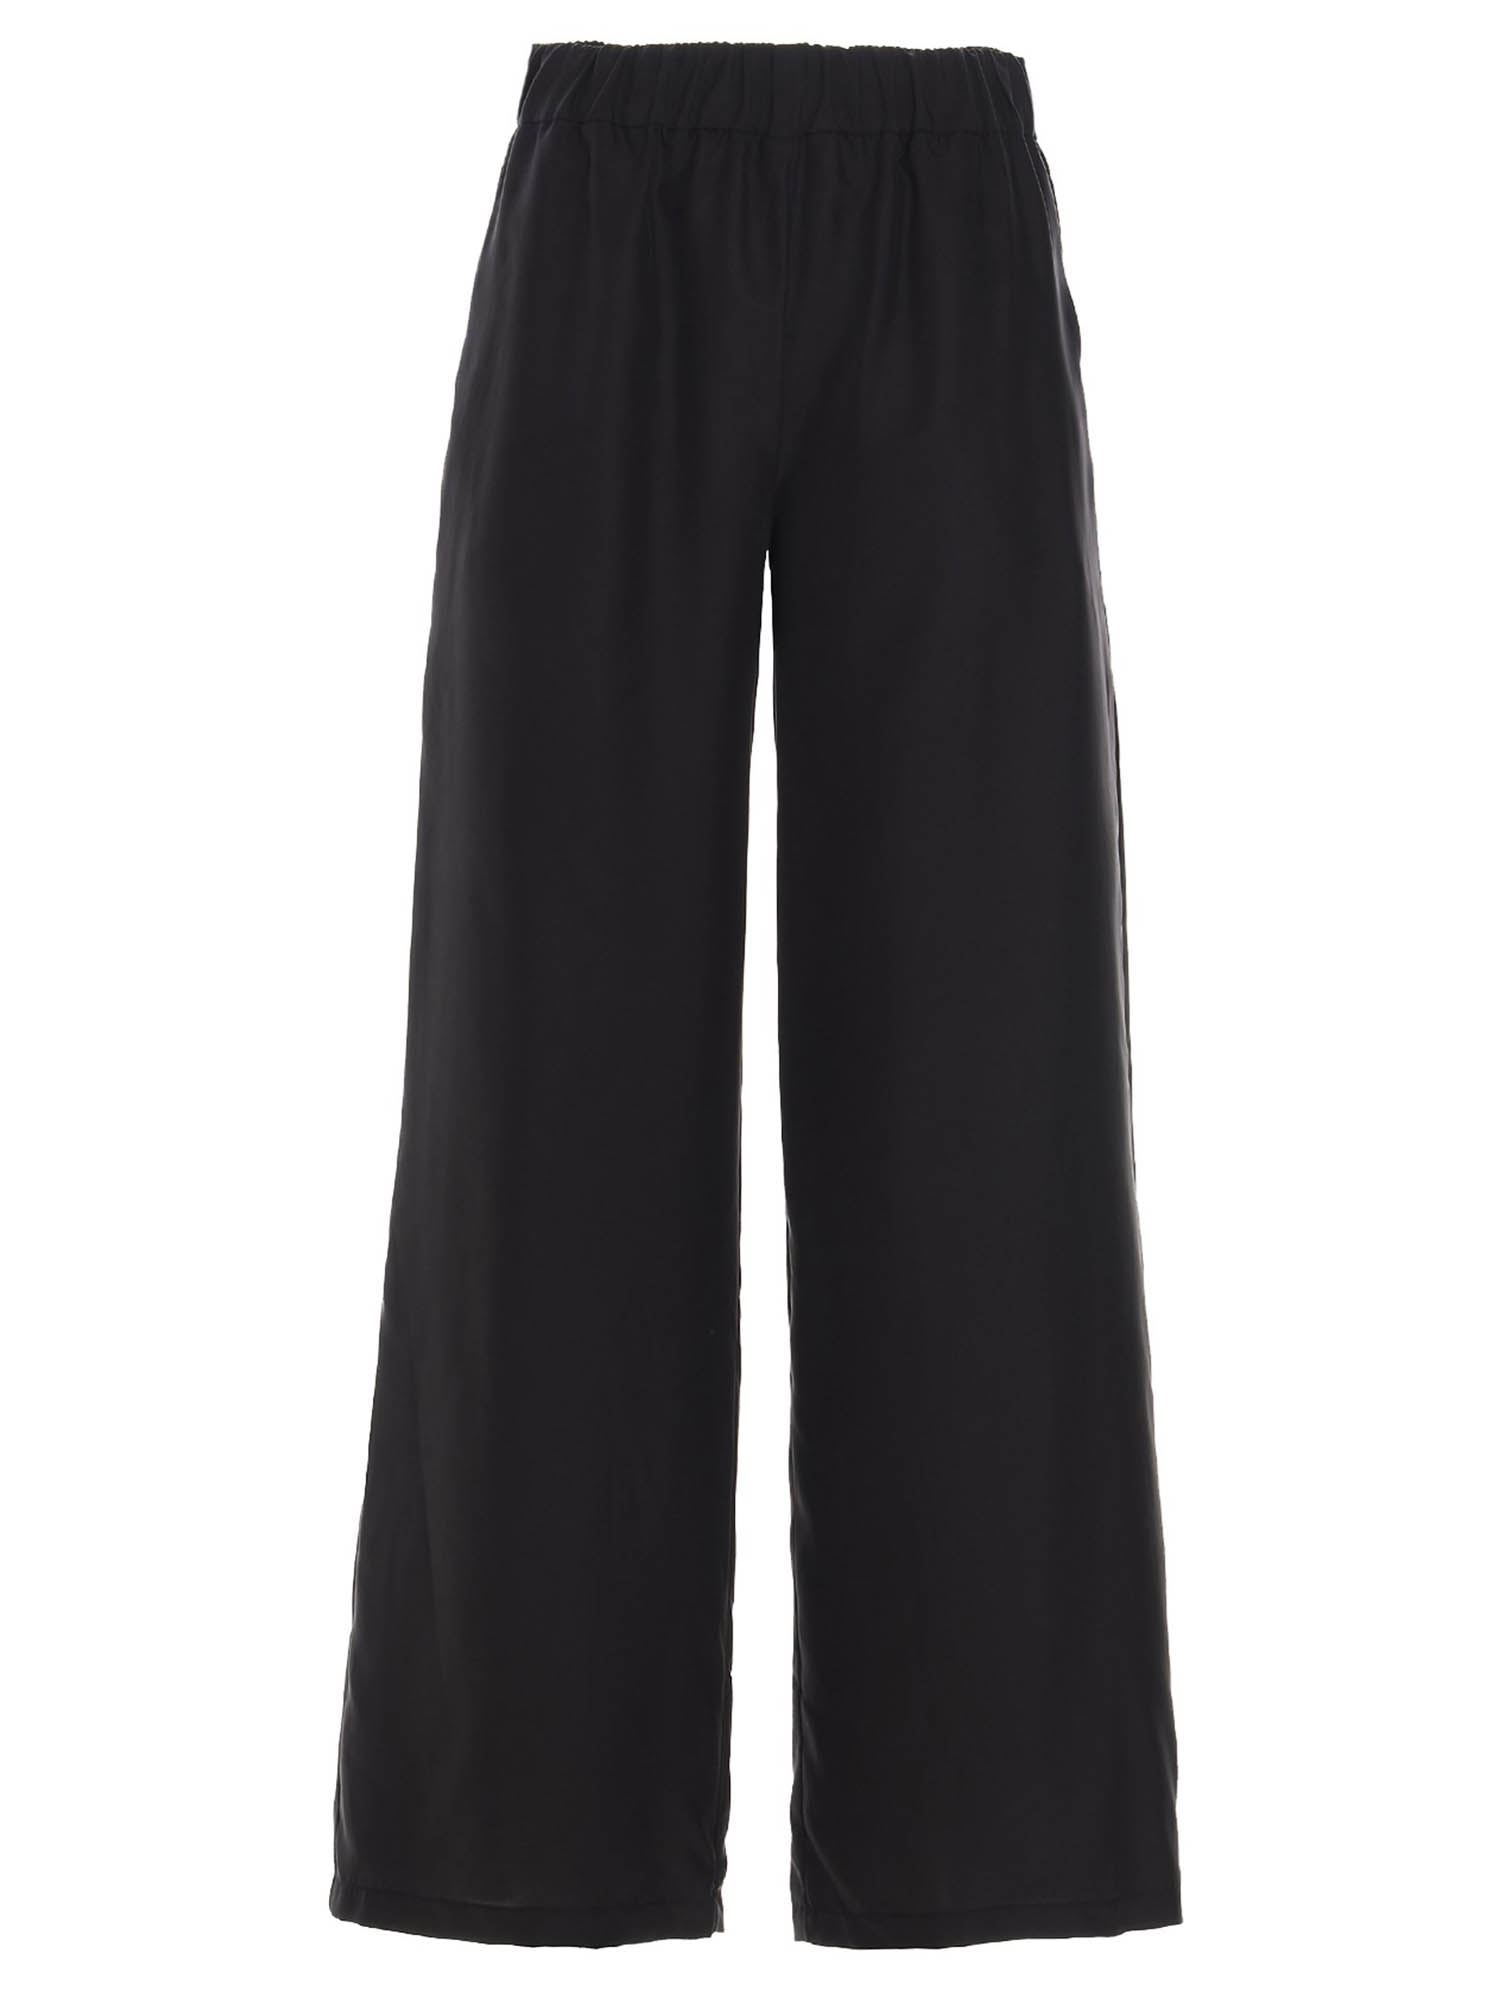 P.a.r.o.s.h. SILK TROUSERS IN BLACK